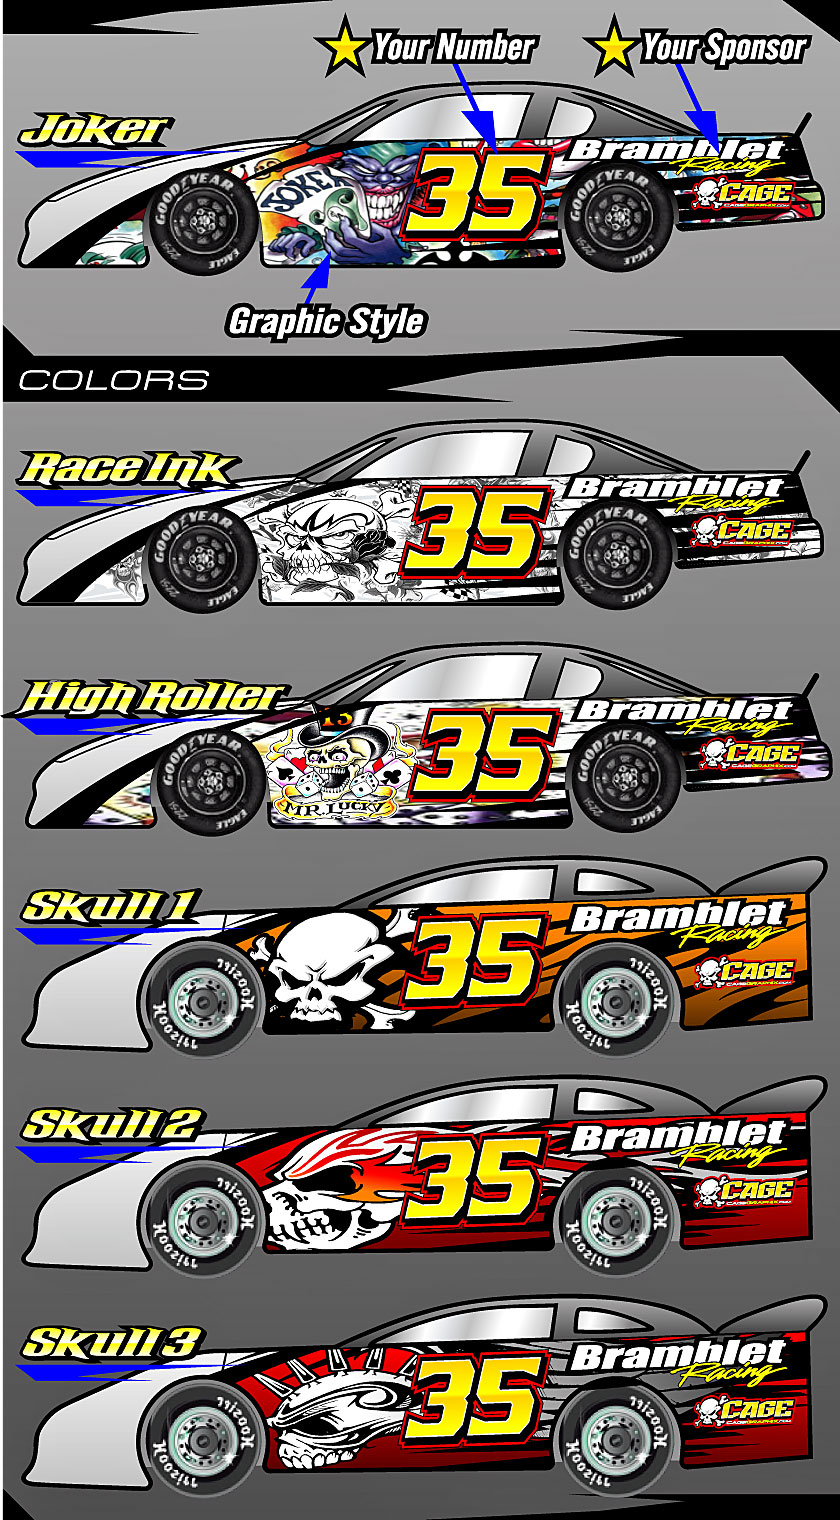 Race Car Graphics Software | www.imgkid.com - The Image